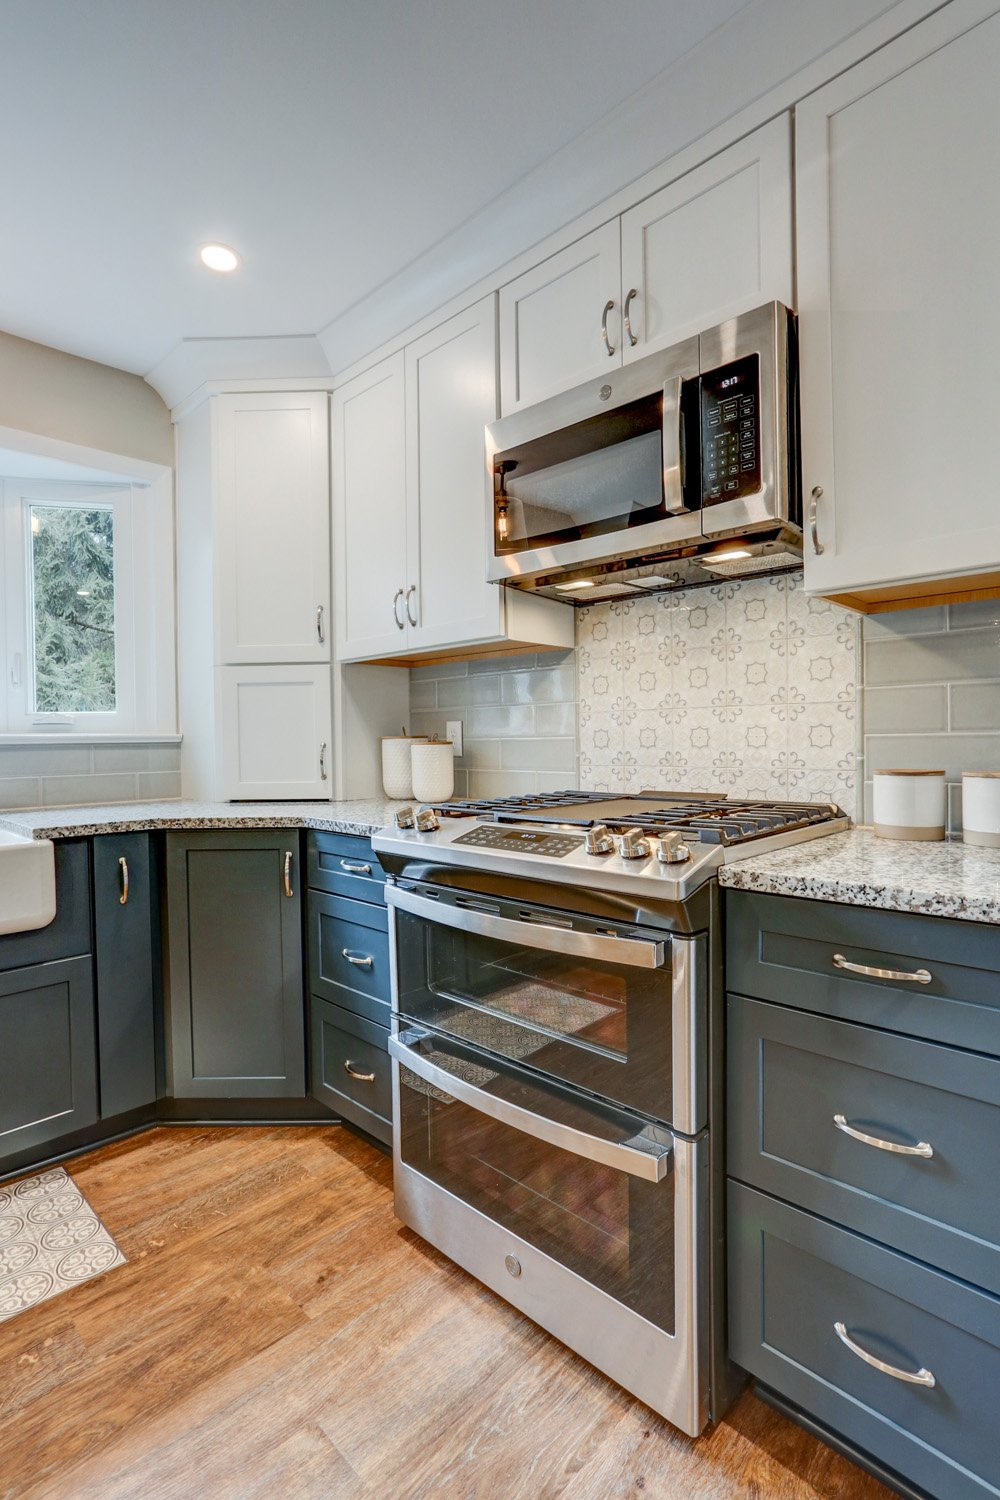 New Stainless Steel Appliances in Warwick Township Kitchen Remodel